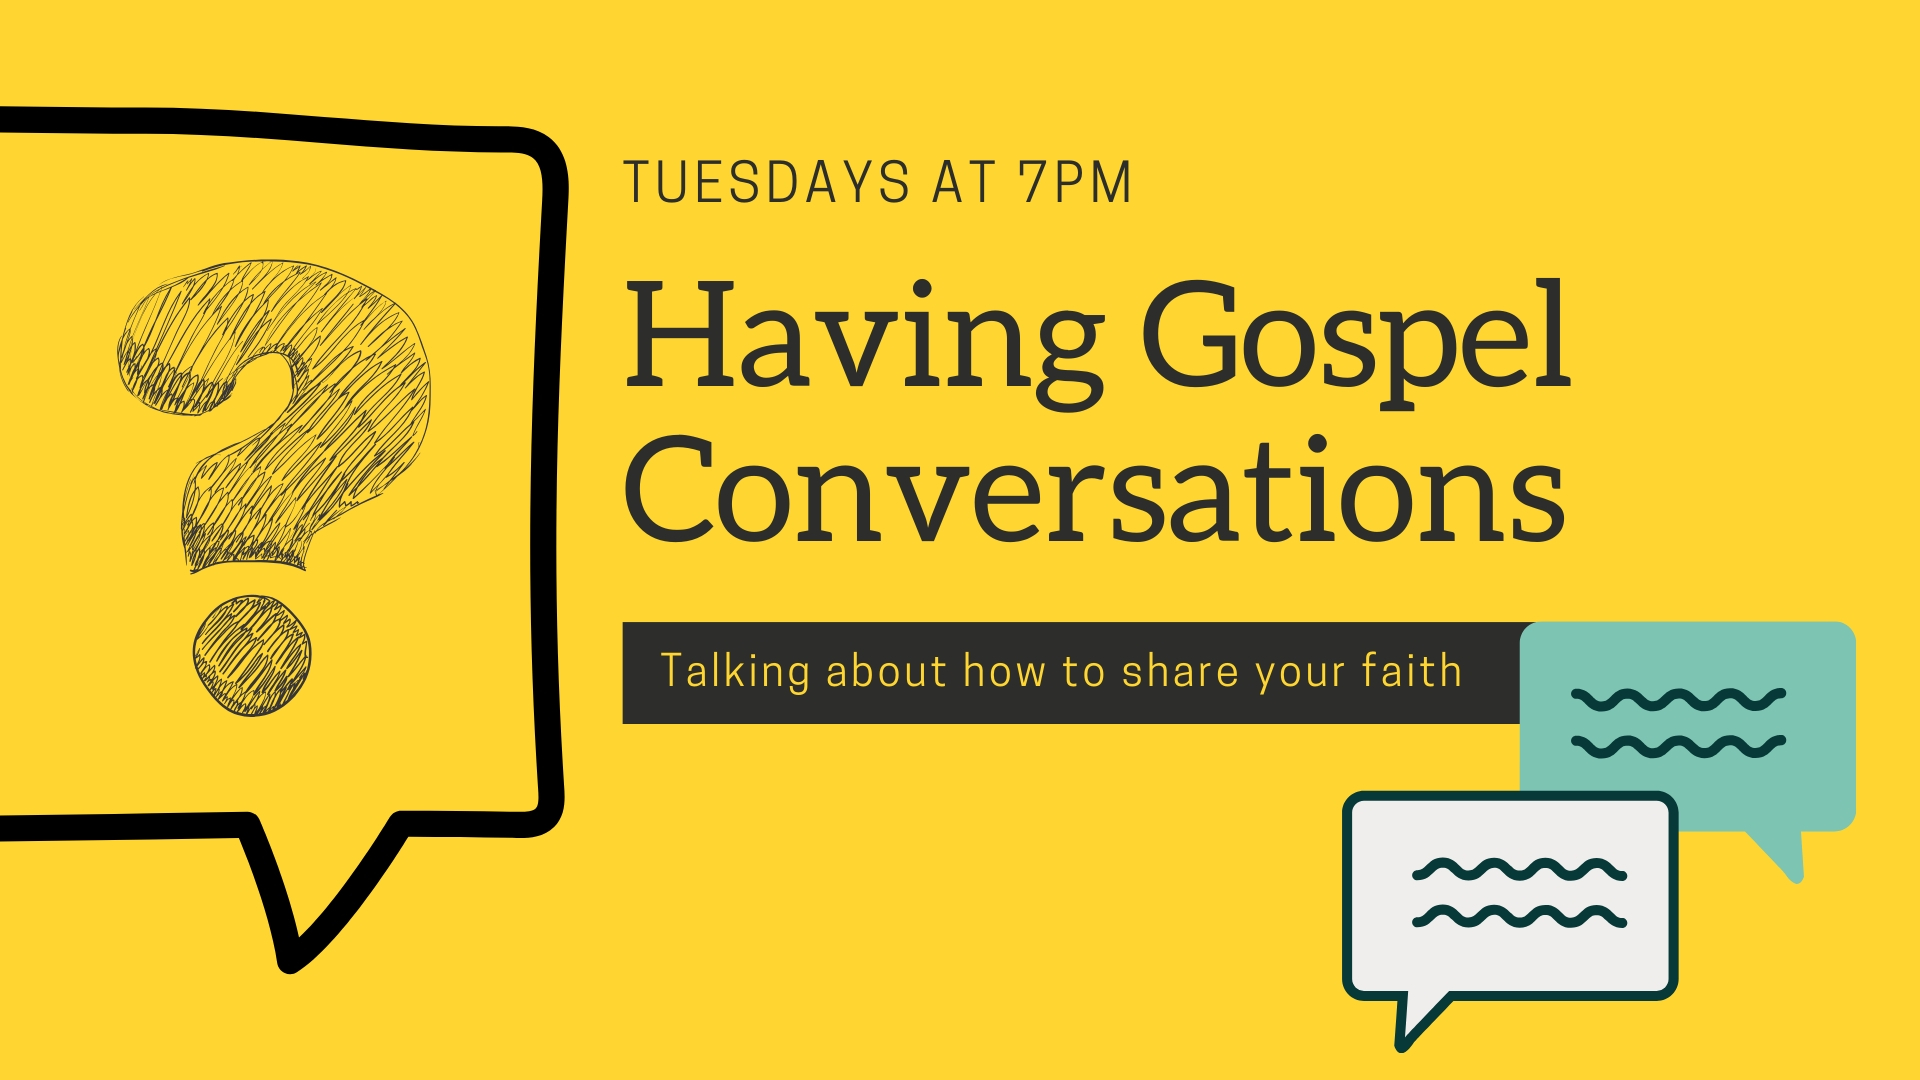 Having Gospel Conversations - Week 2 Image